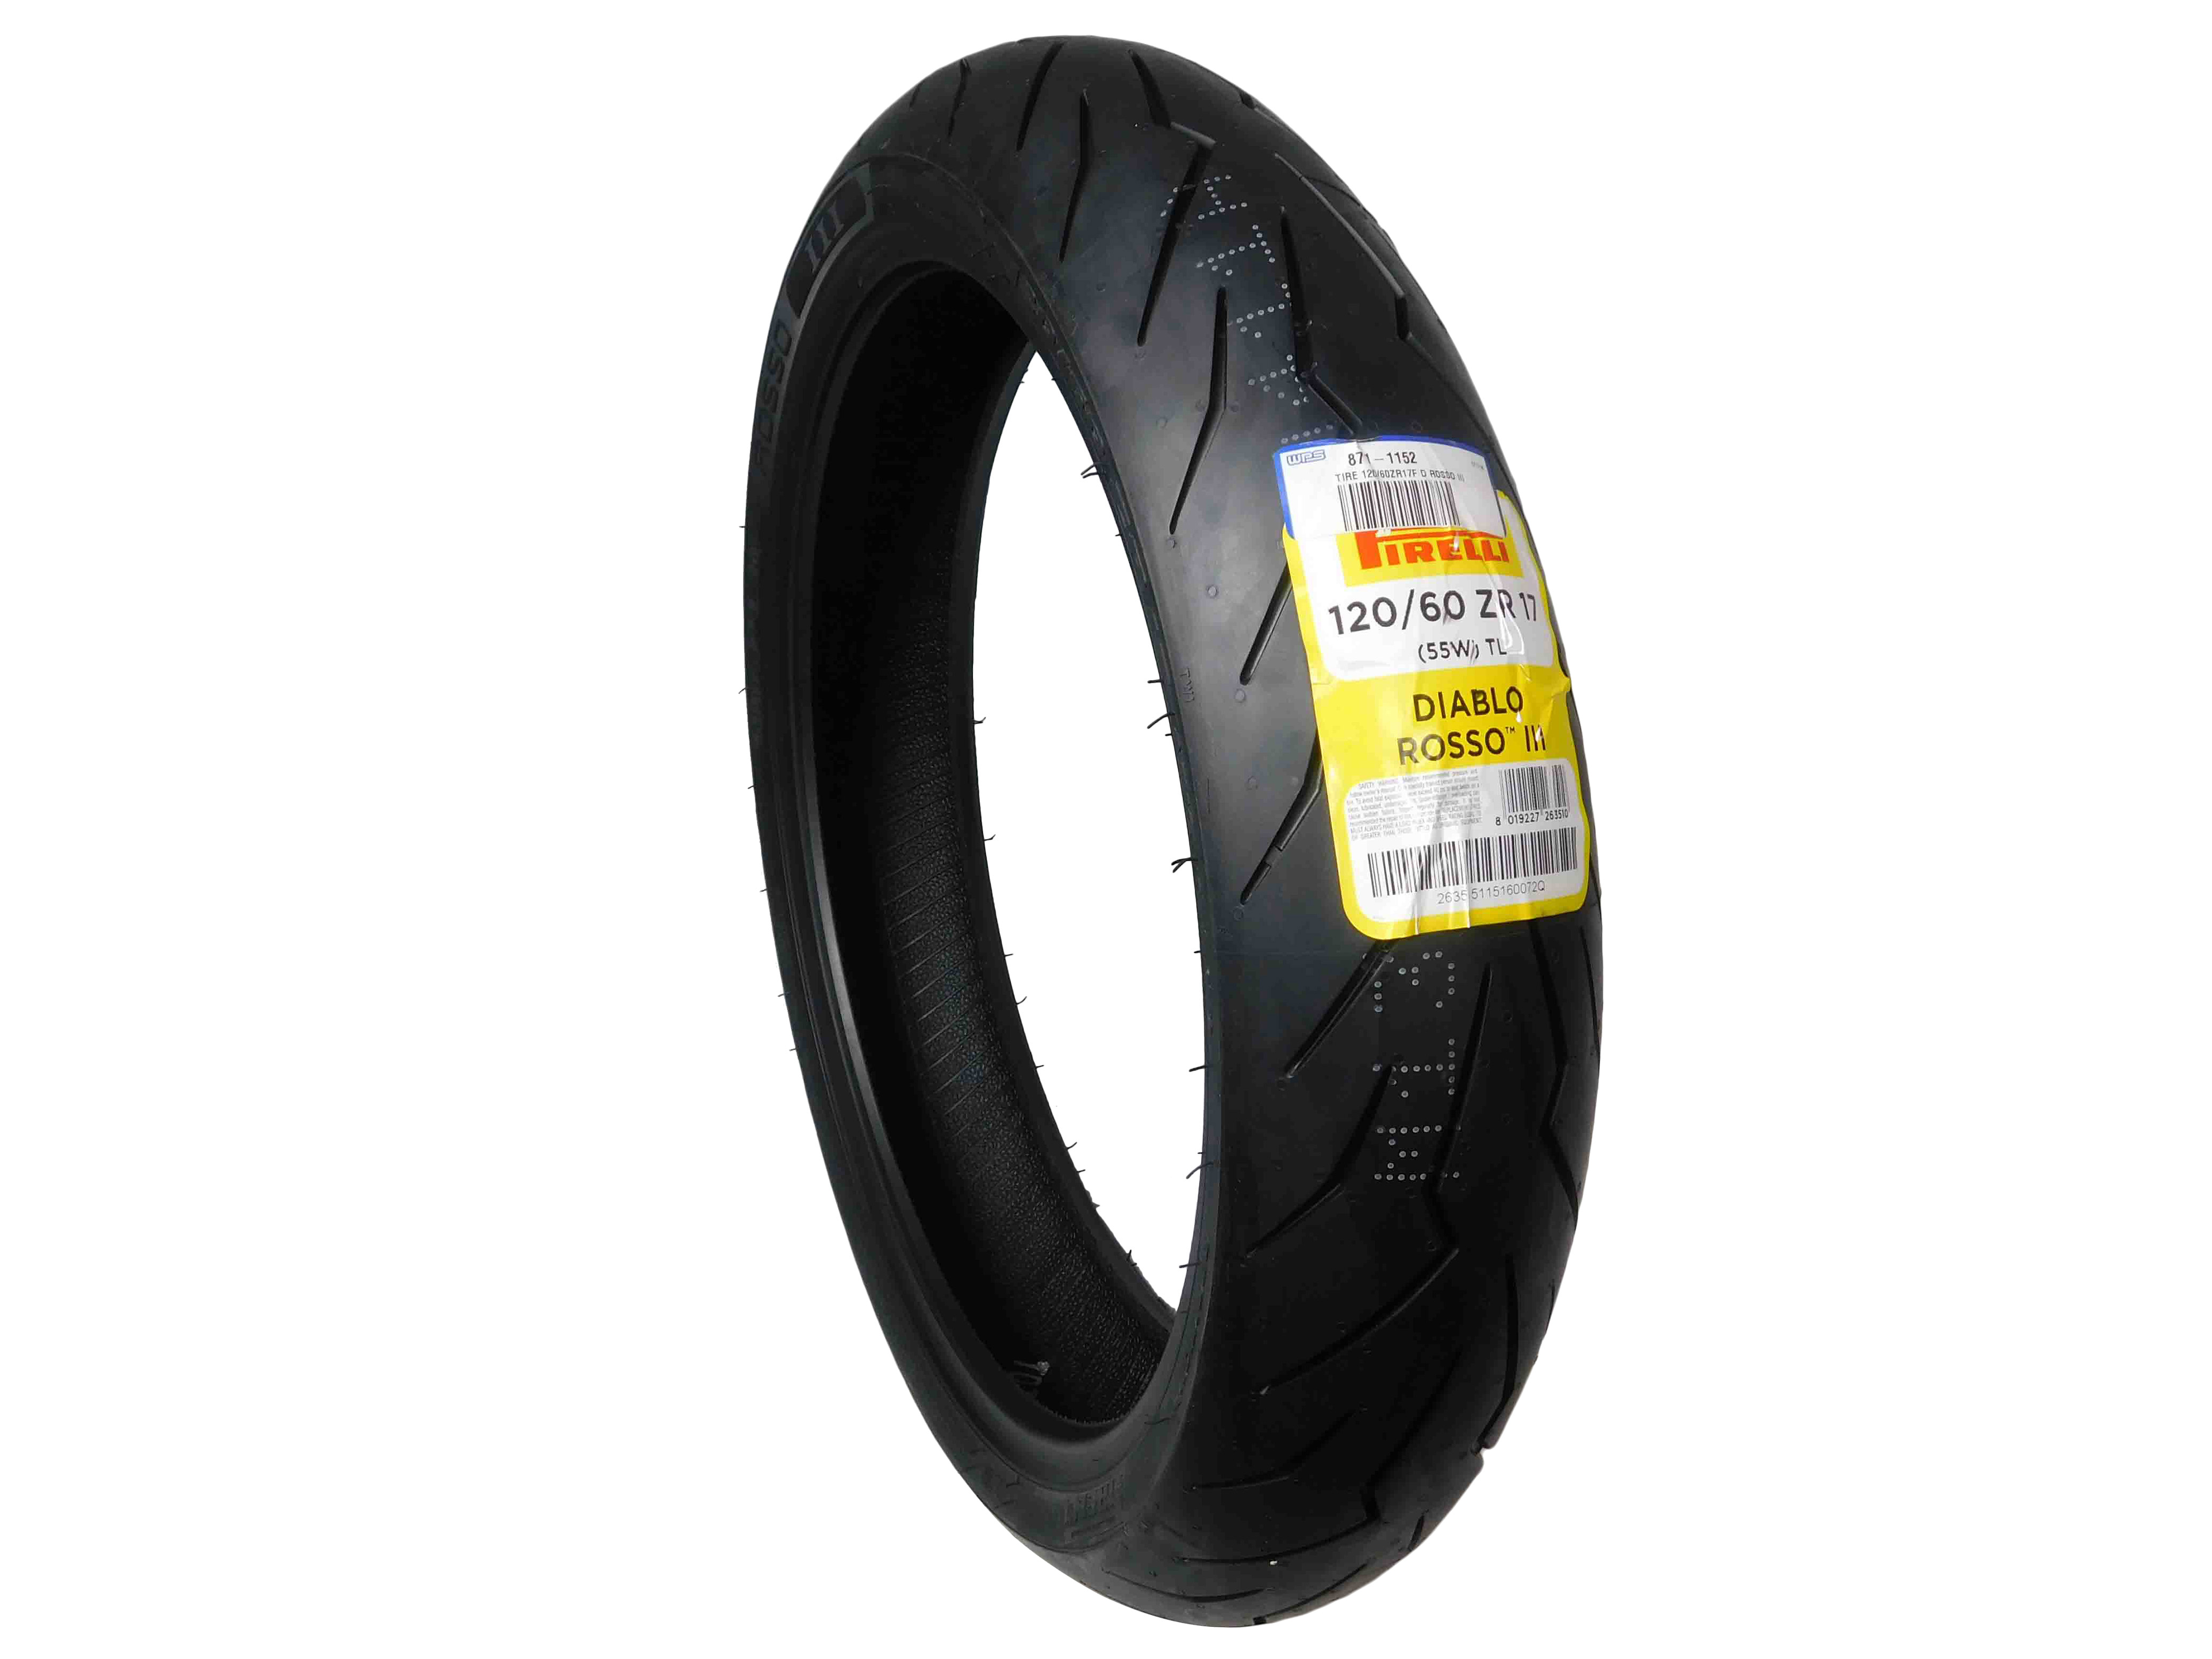 PirelliDiabloRosso-III-120-60ZR17F-D-Front-Motorcycle-Tire-Rosso-image-1